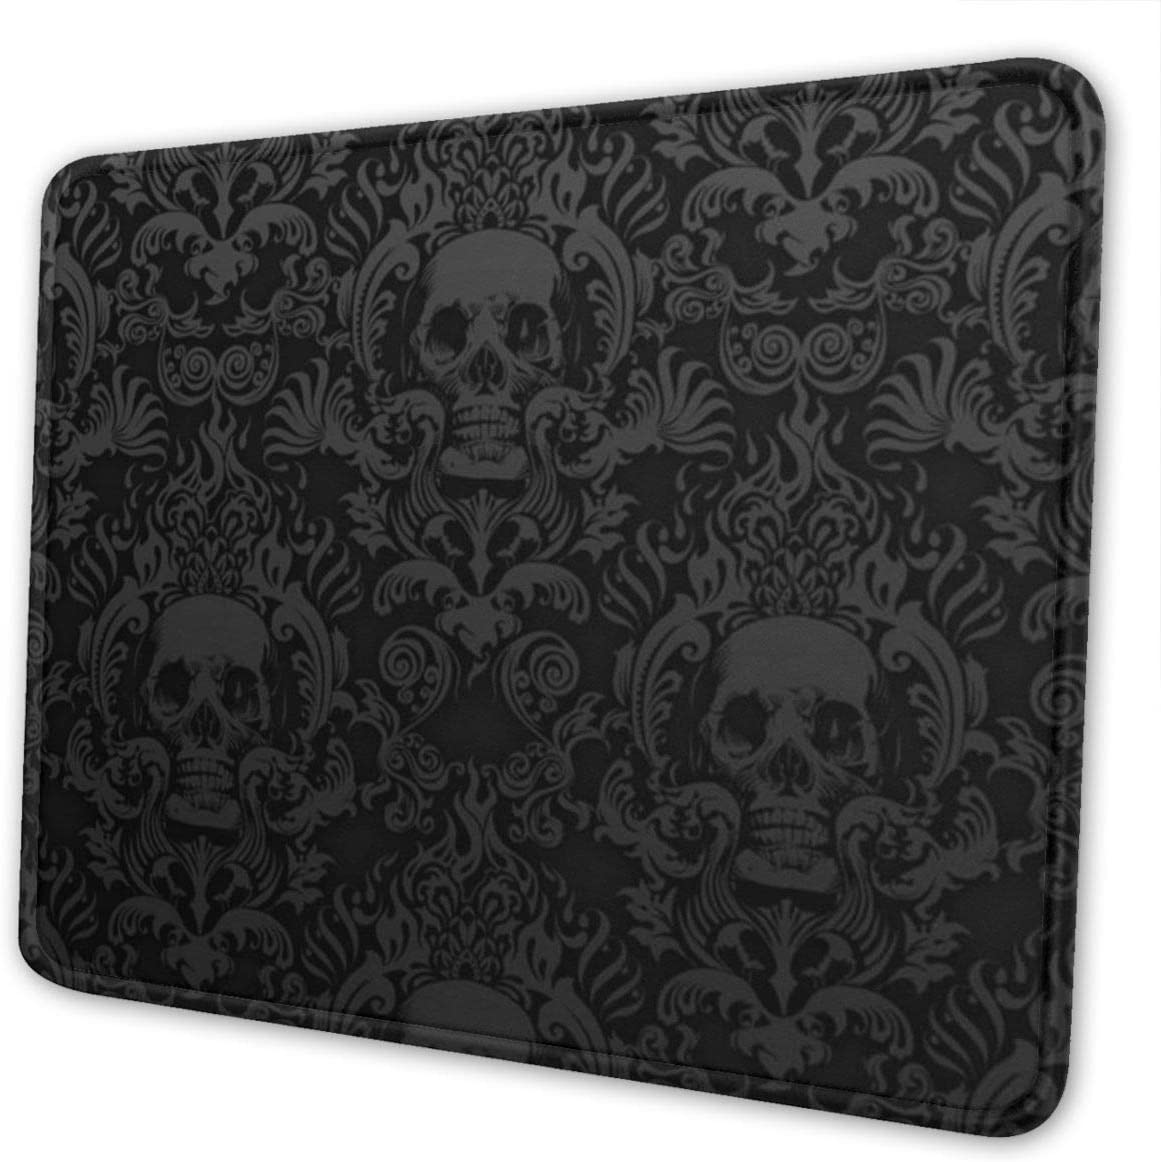 Gothic Boston Mall Wallpaper Skull Mouse Pad Non-Slip Spring new work Base Rubber Gamin with